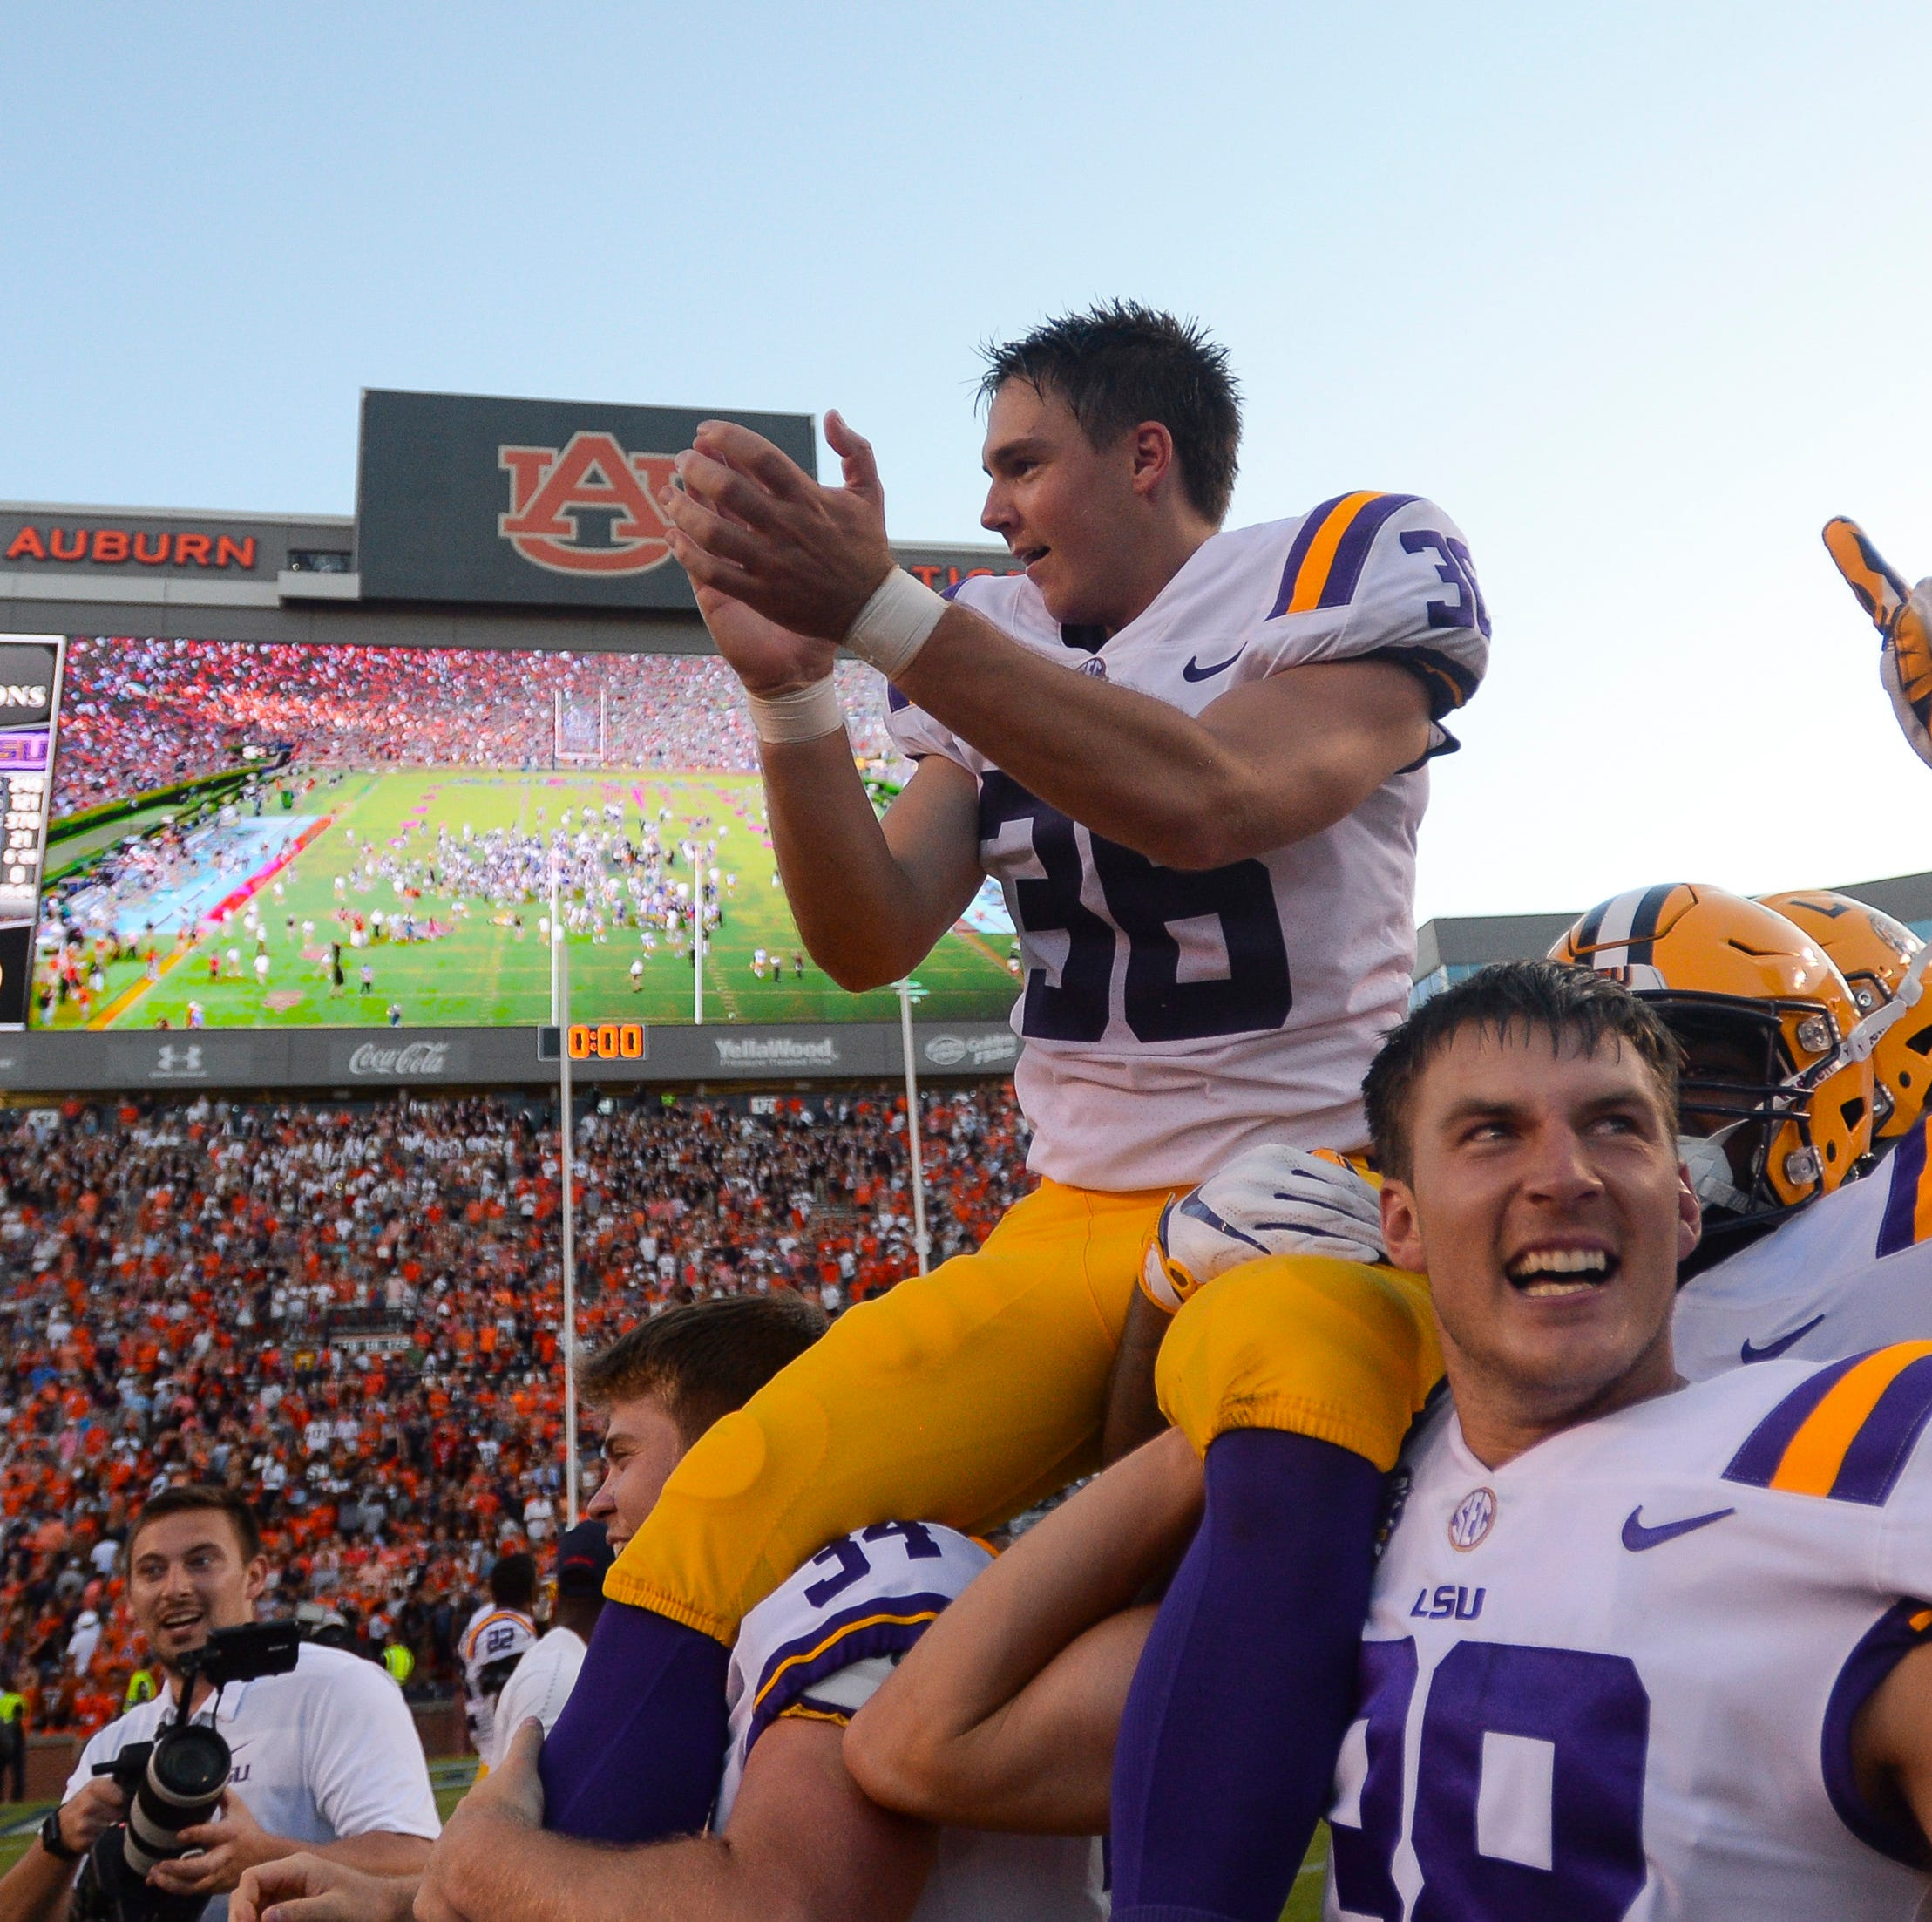 LSU vs. La. Tech football: Game time, TV channel, where to stream online